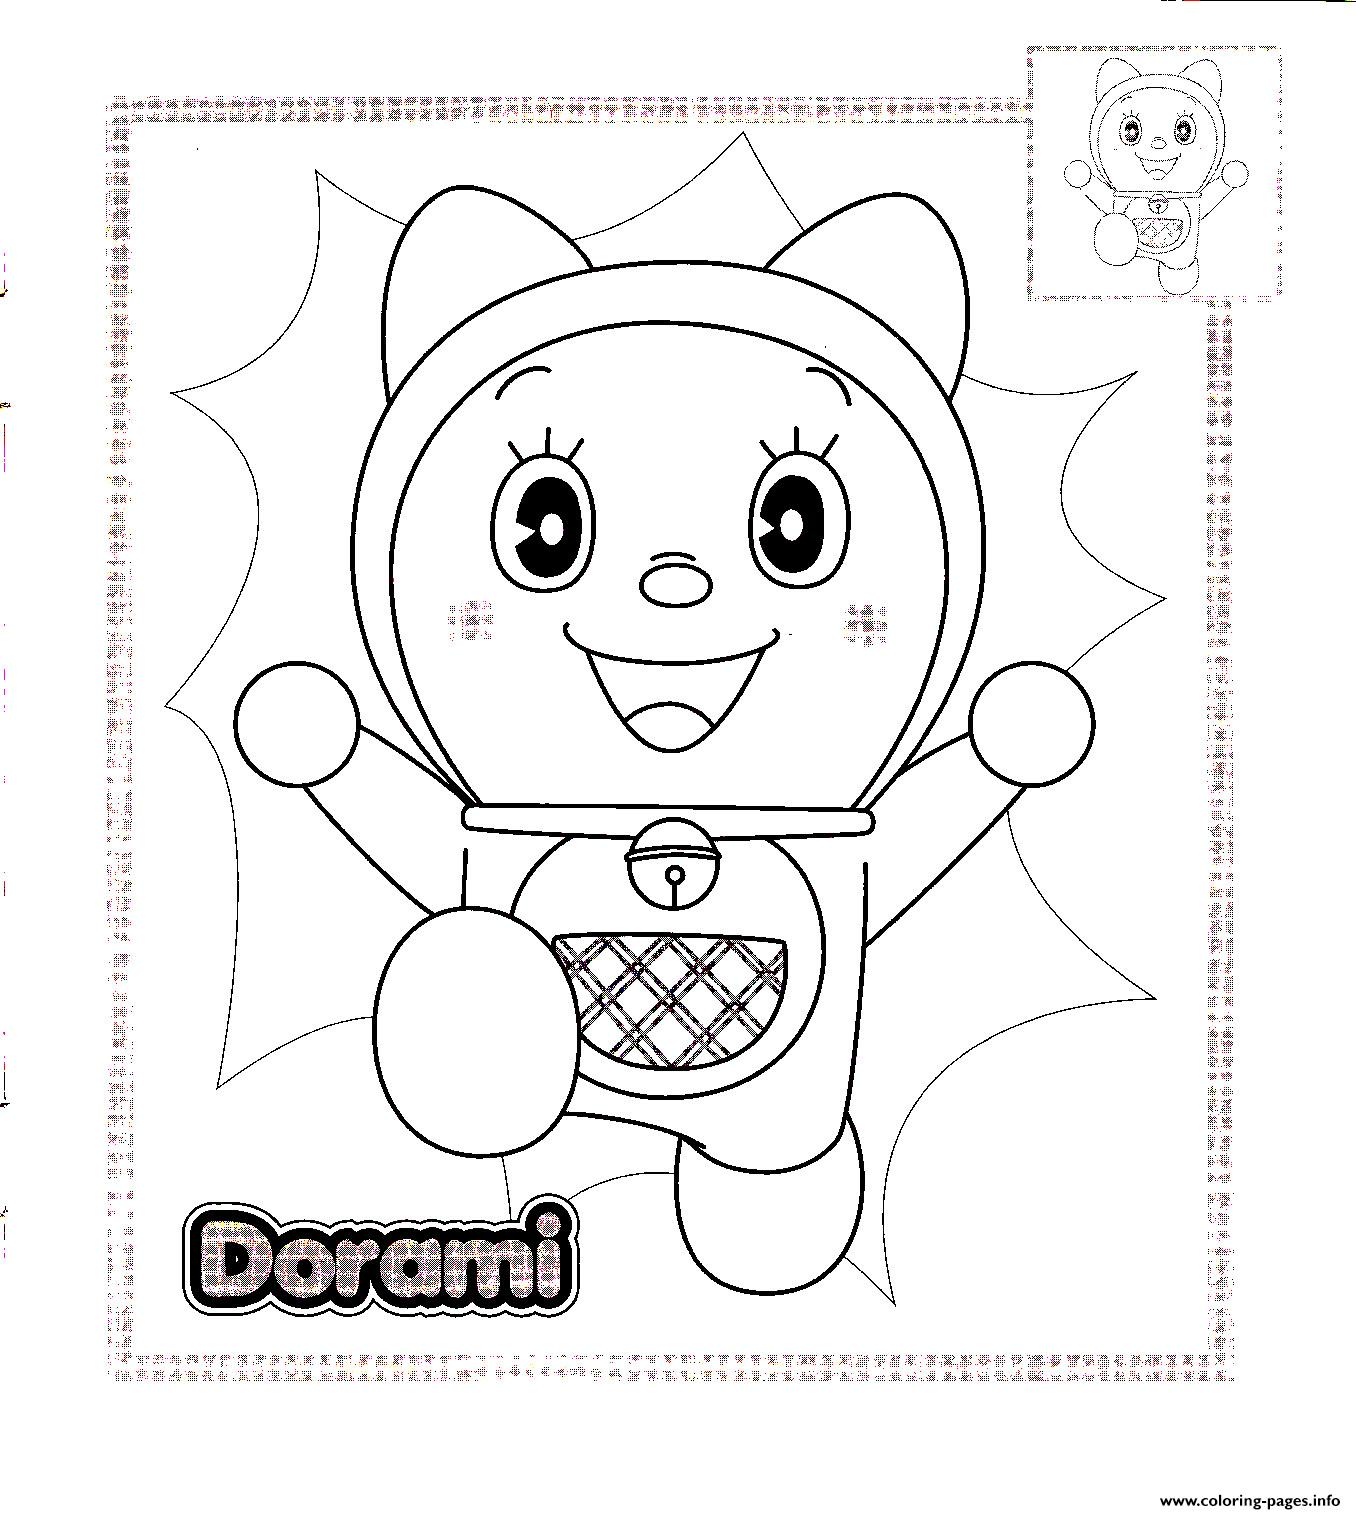 Doraemon Coloring Pages Free Printable